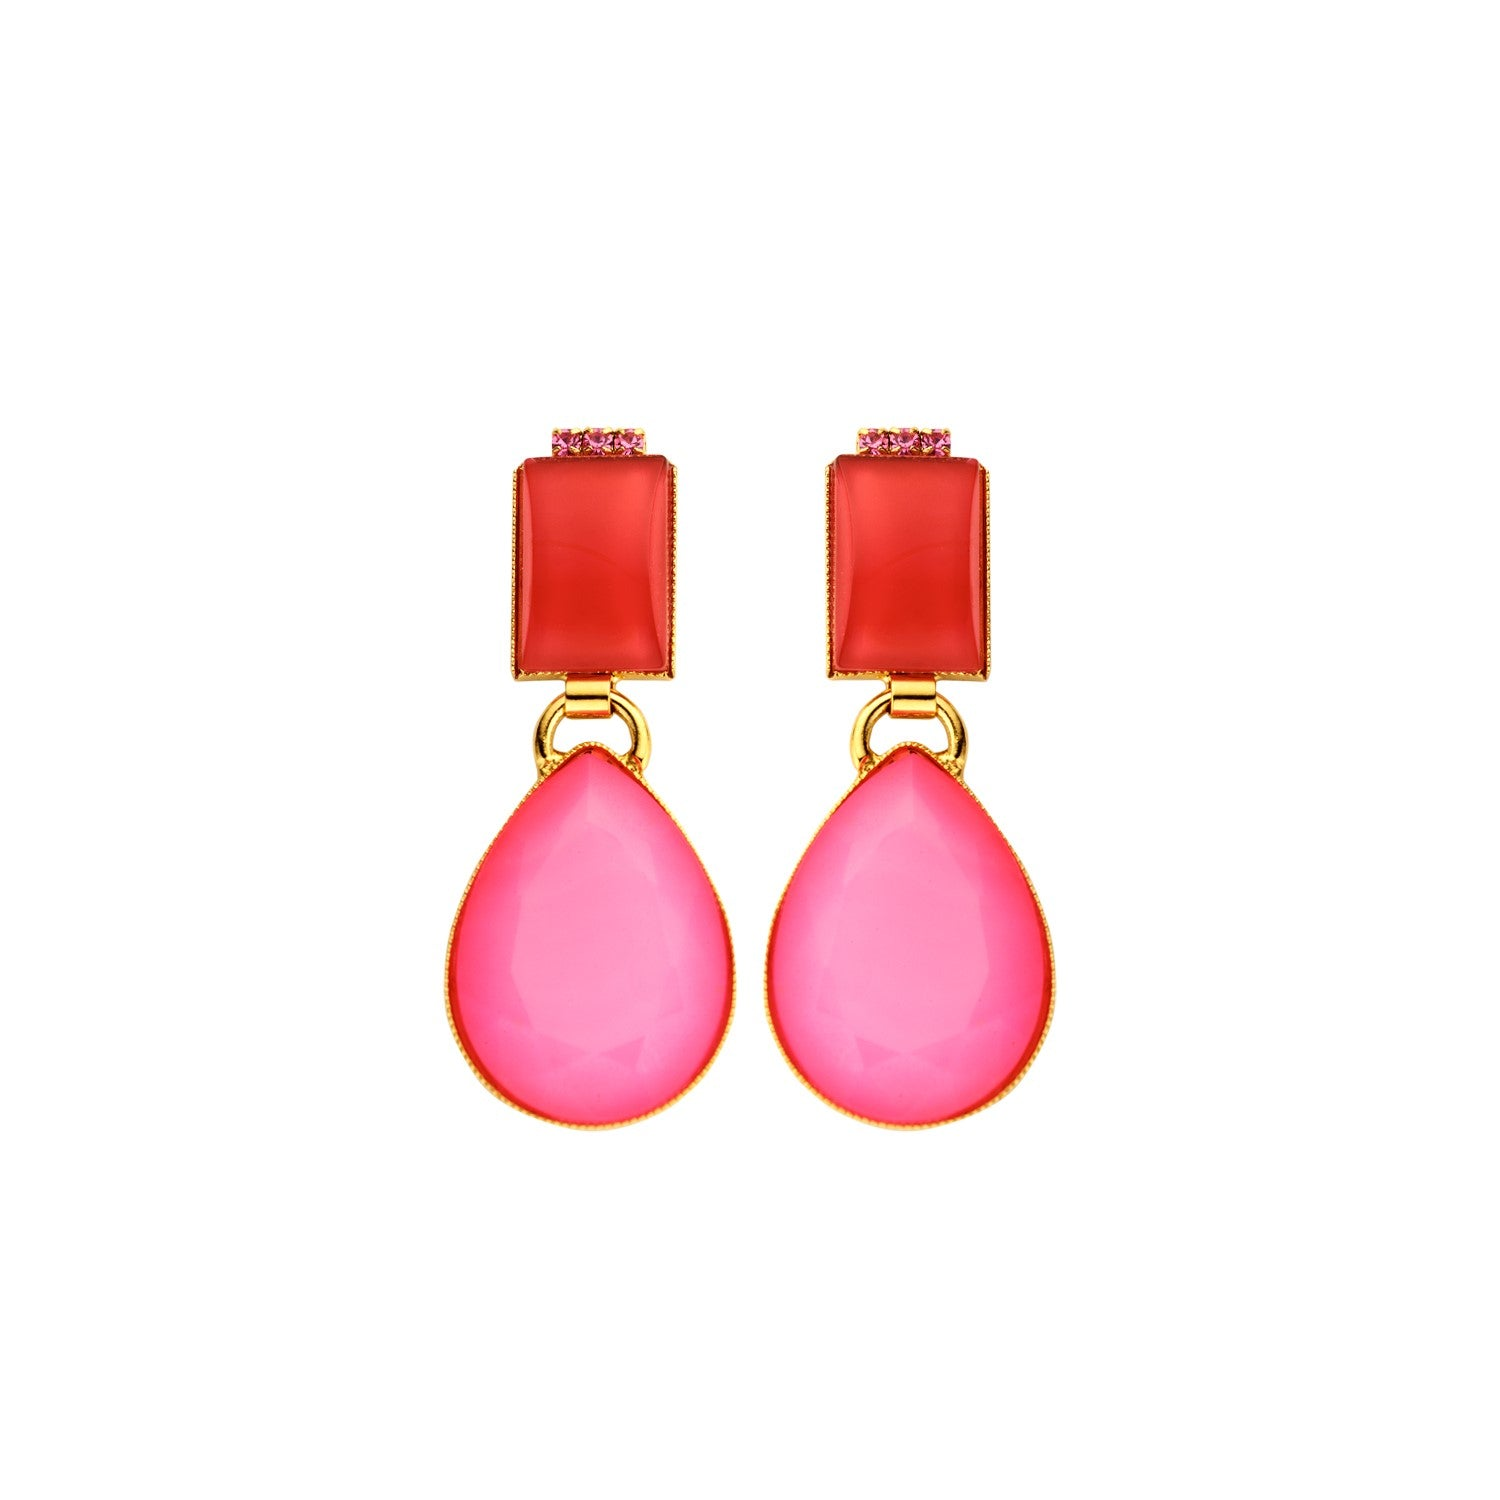 Playa neon fuchsia earrings - Souvenirs de Pomme